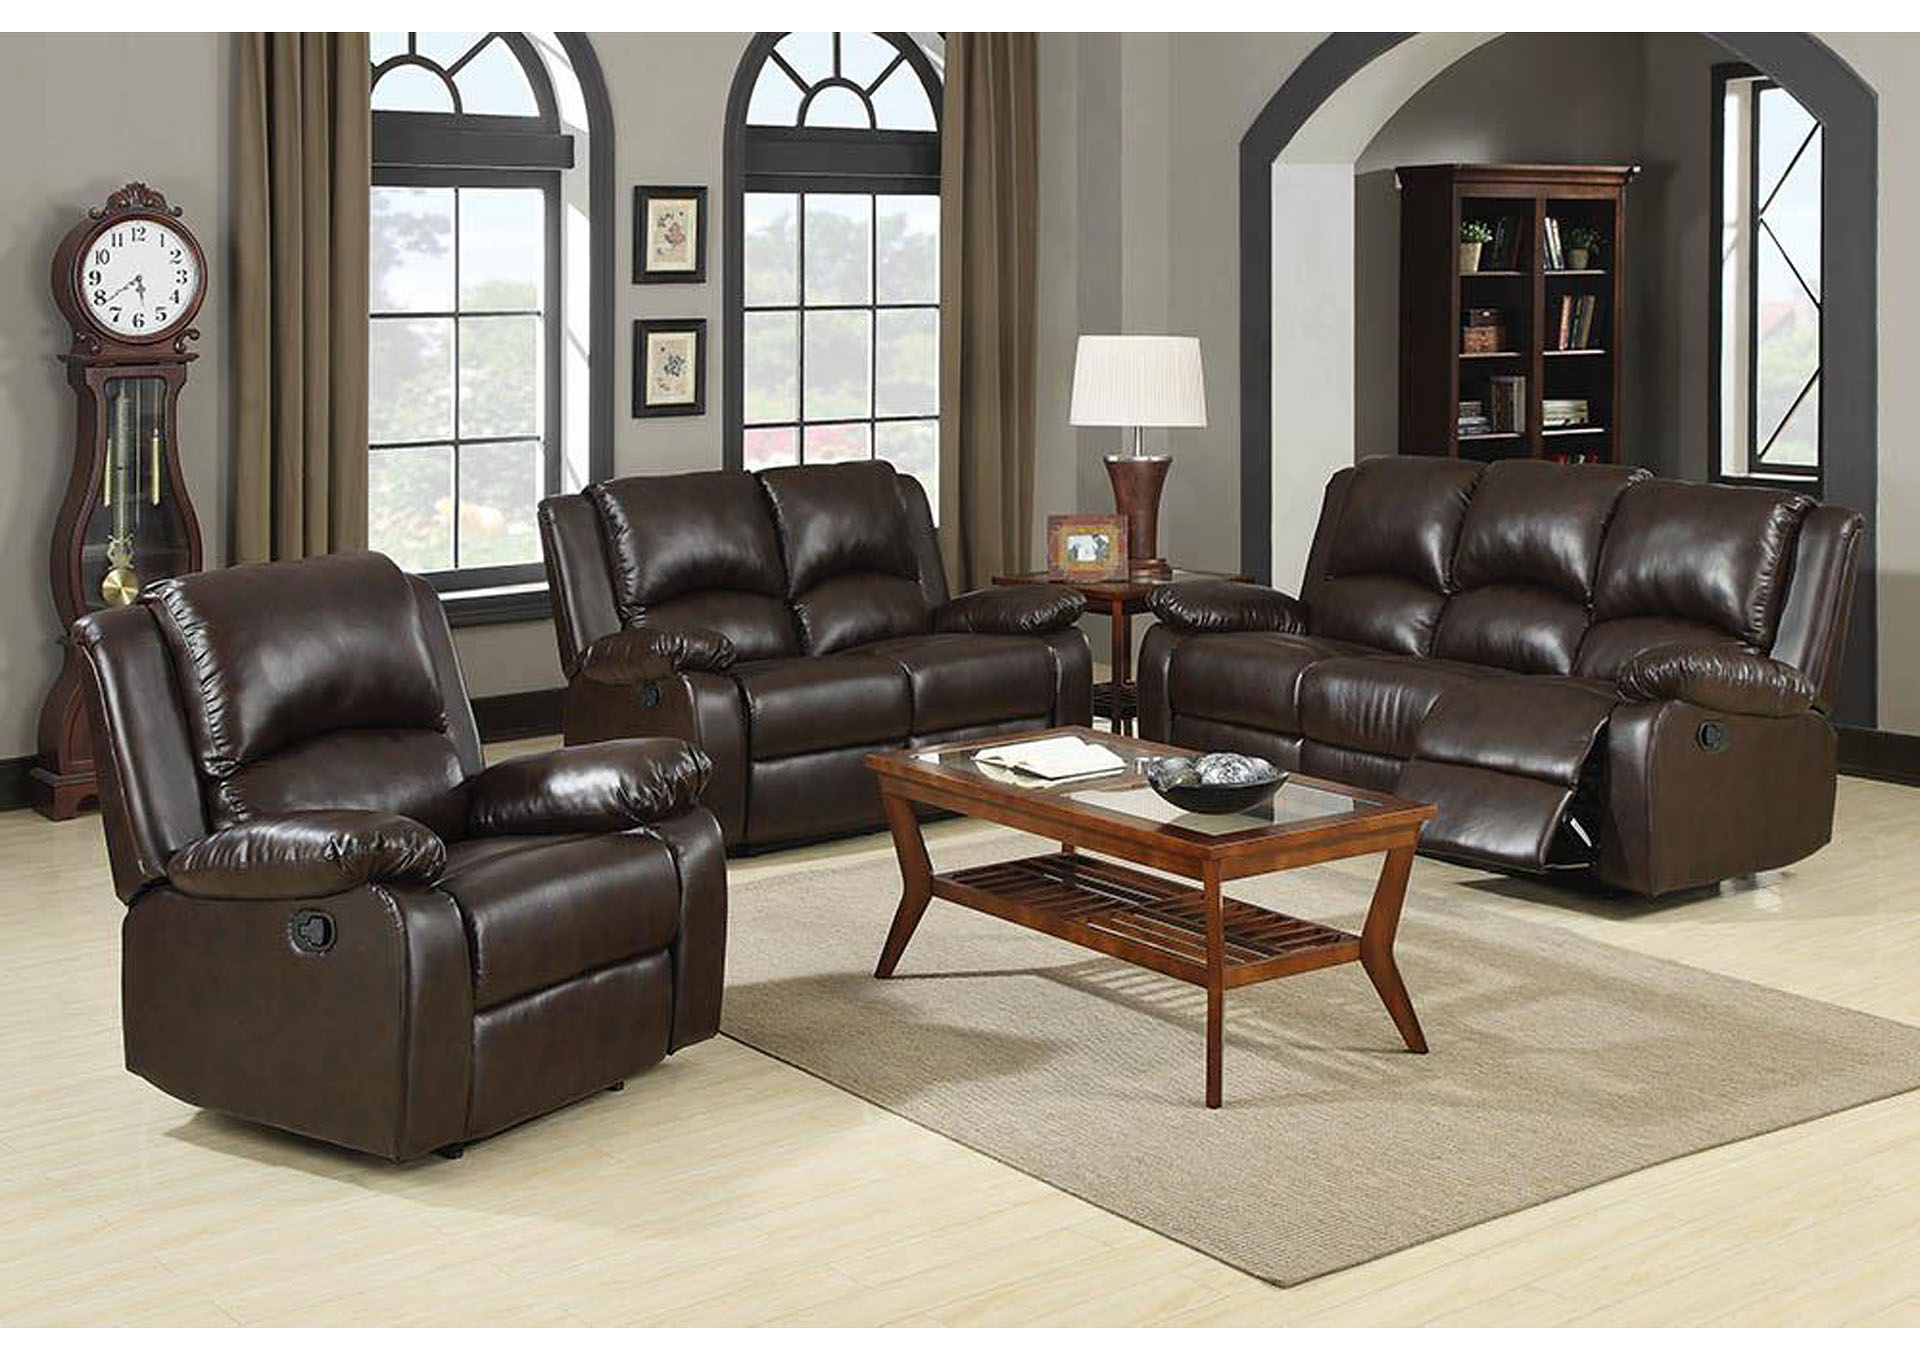 Boston Brown Motion Sofa,Coaster Furniture